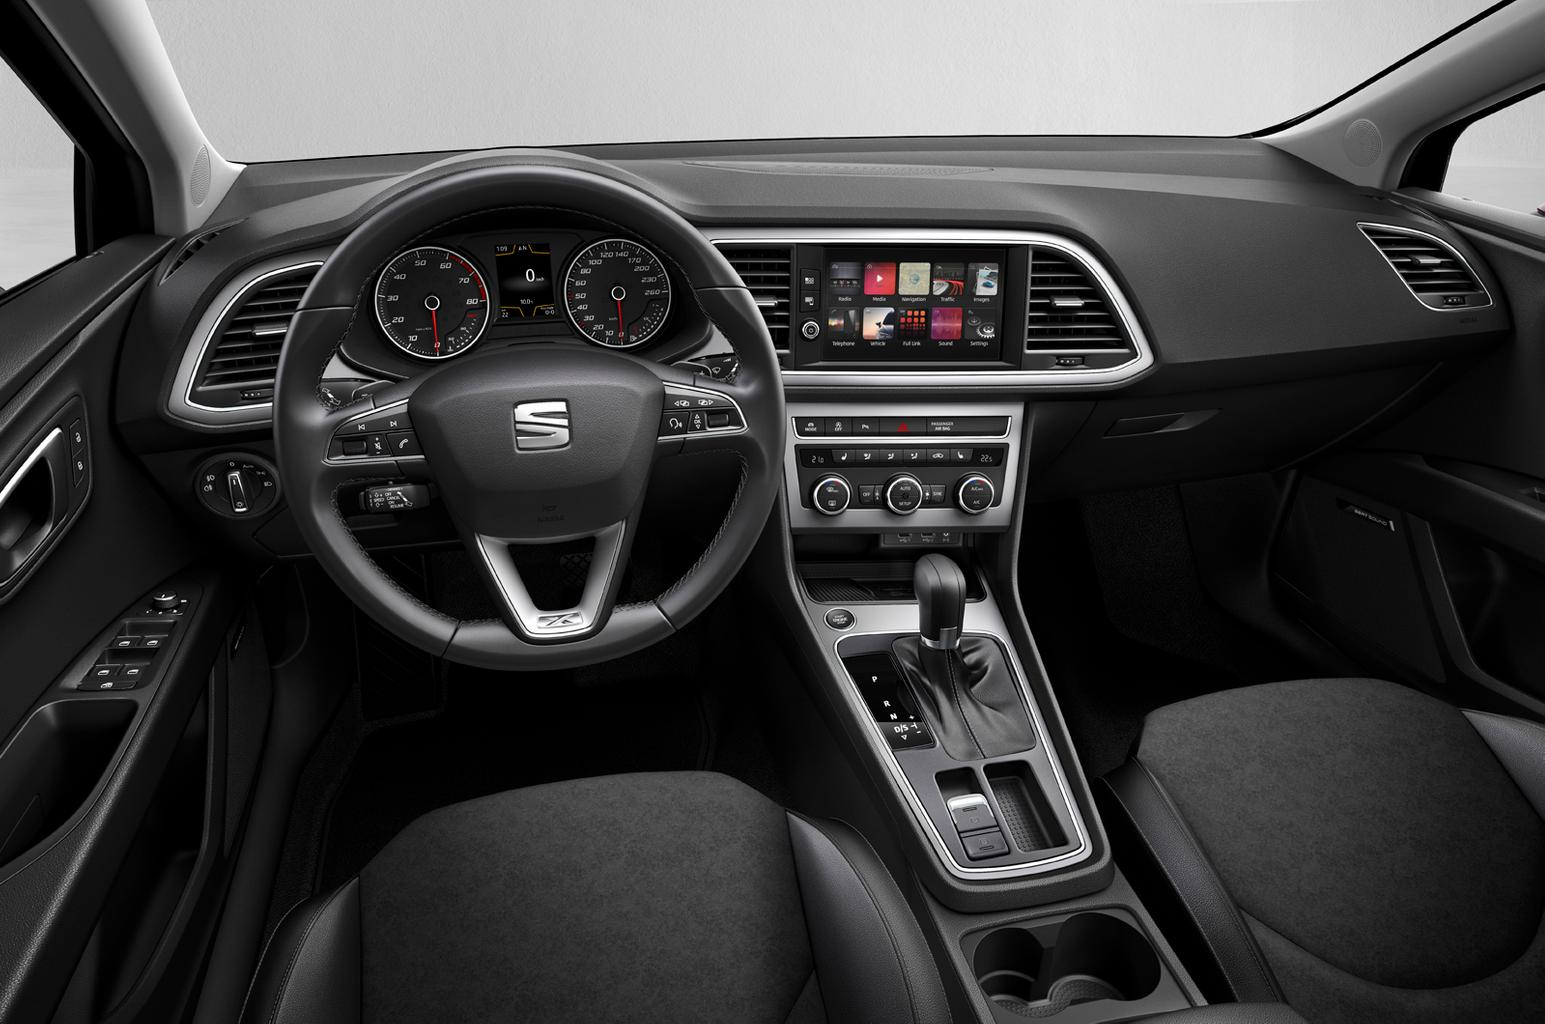 2017 Seat Leon update – all you need to know